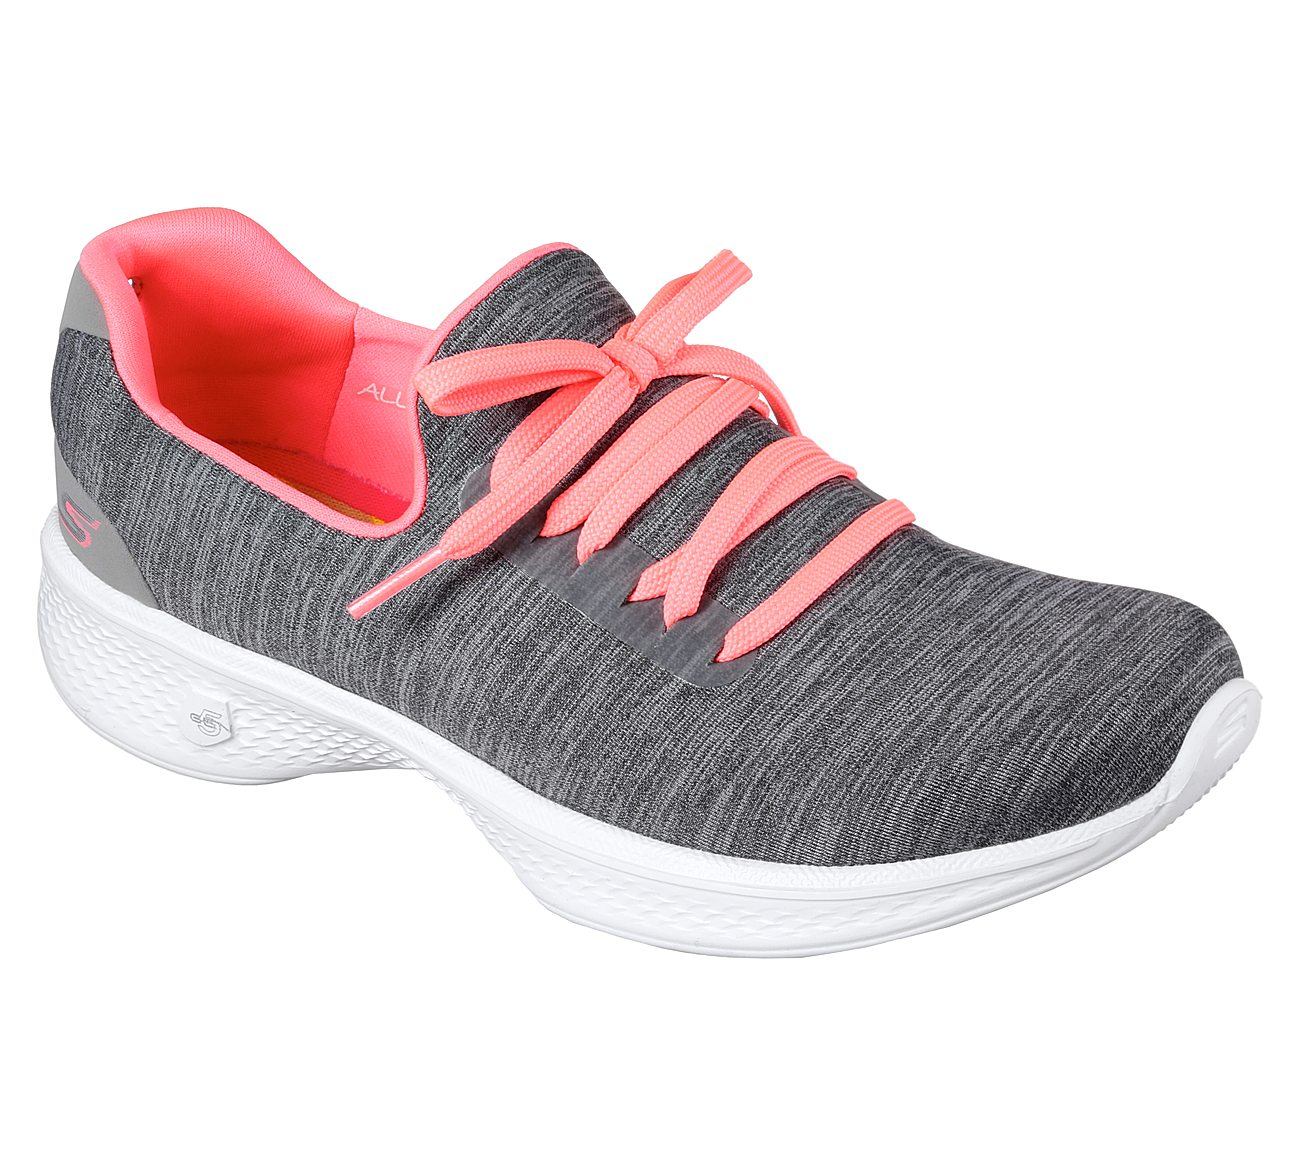 Skechers Lowest Prices Every Day femmes Athletics